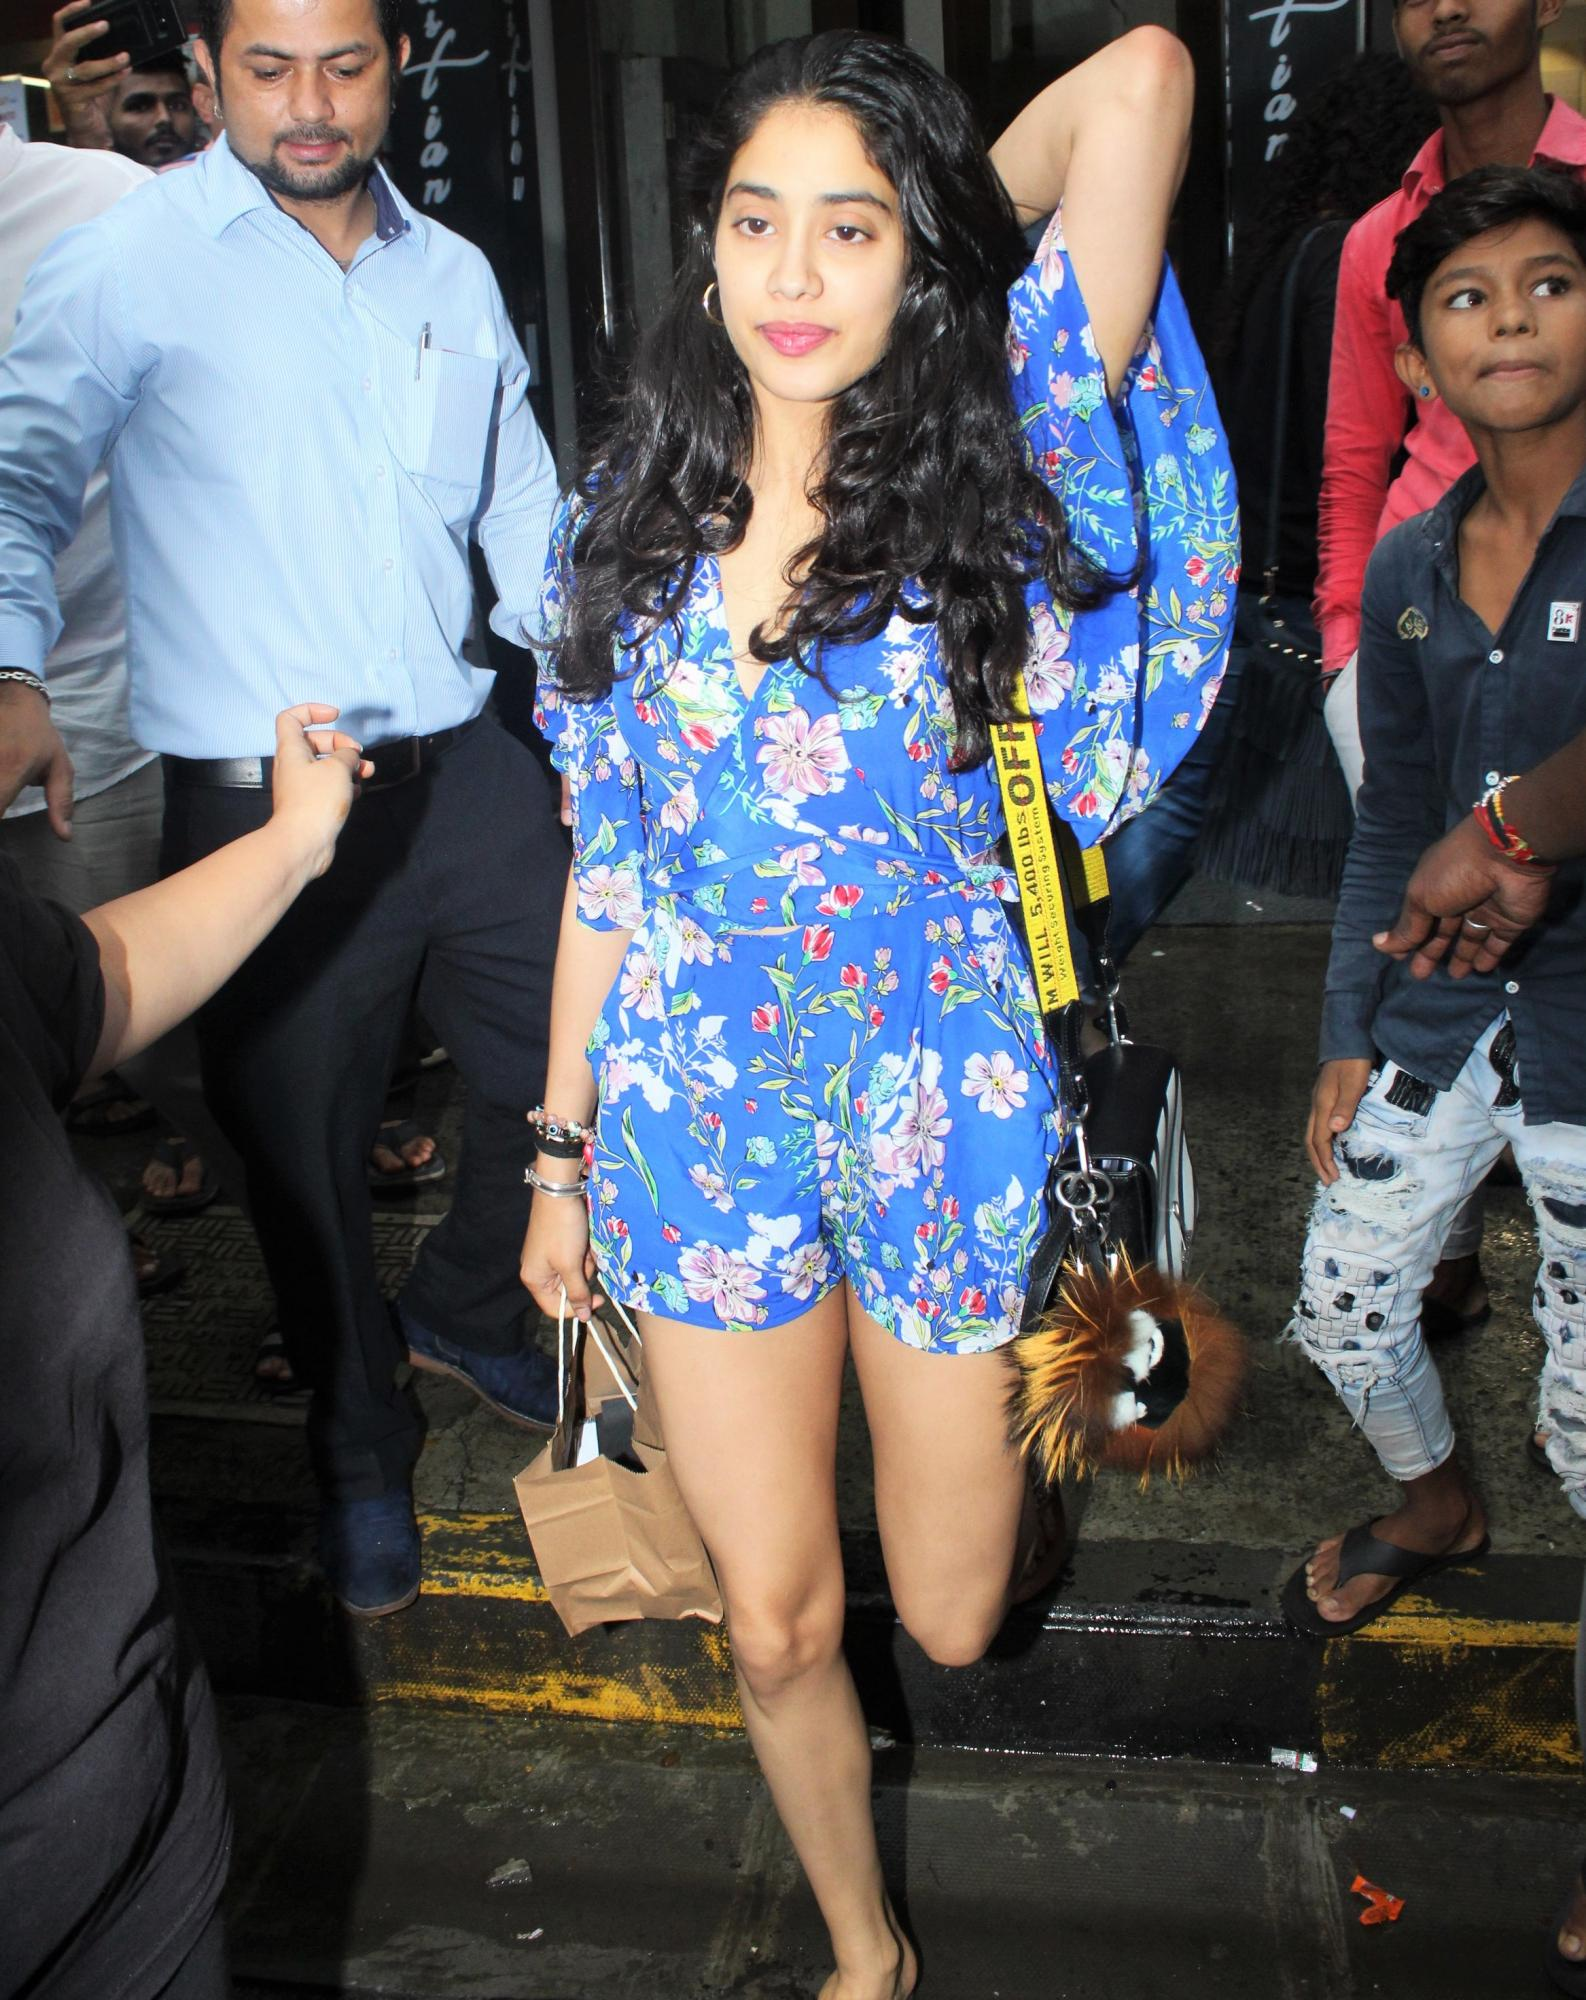 Janhvi Kapoor and Khushi Kapoor Have a Sisters' Day Out in Style!